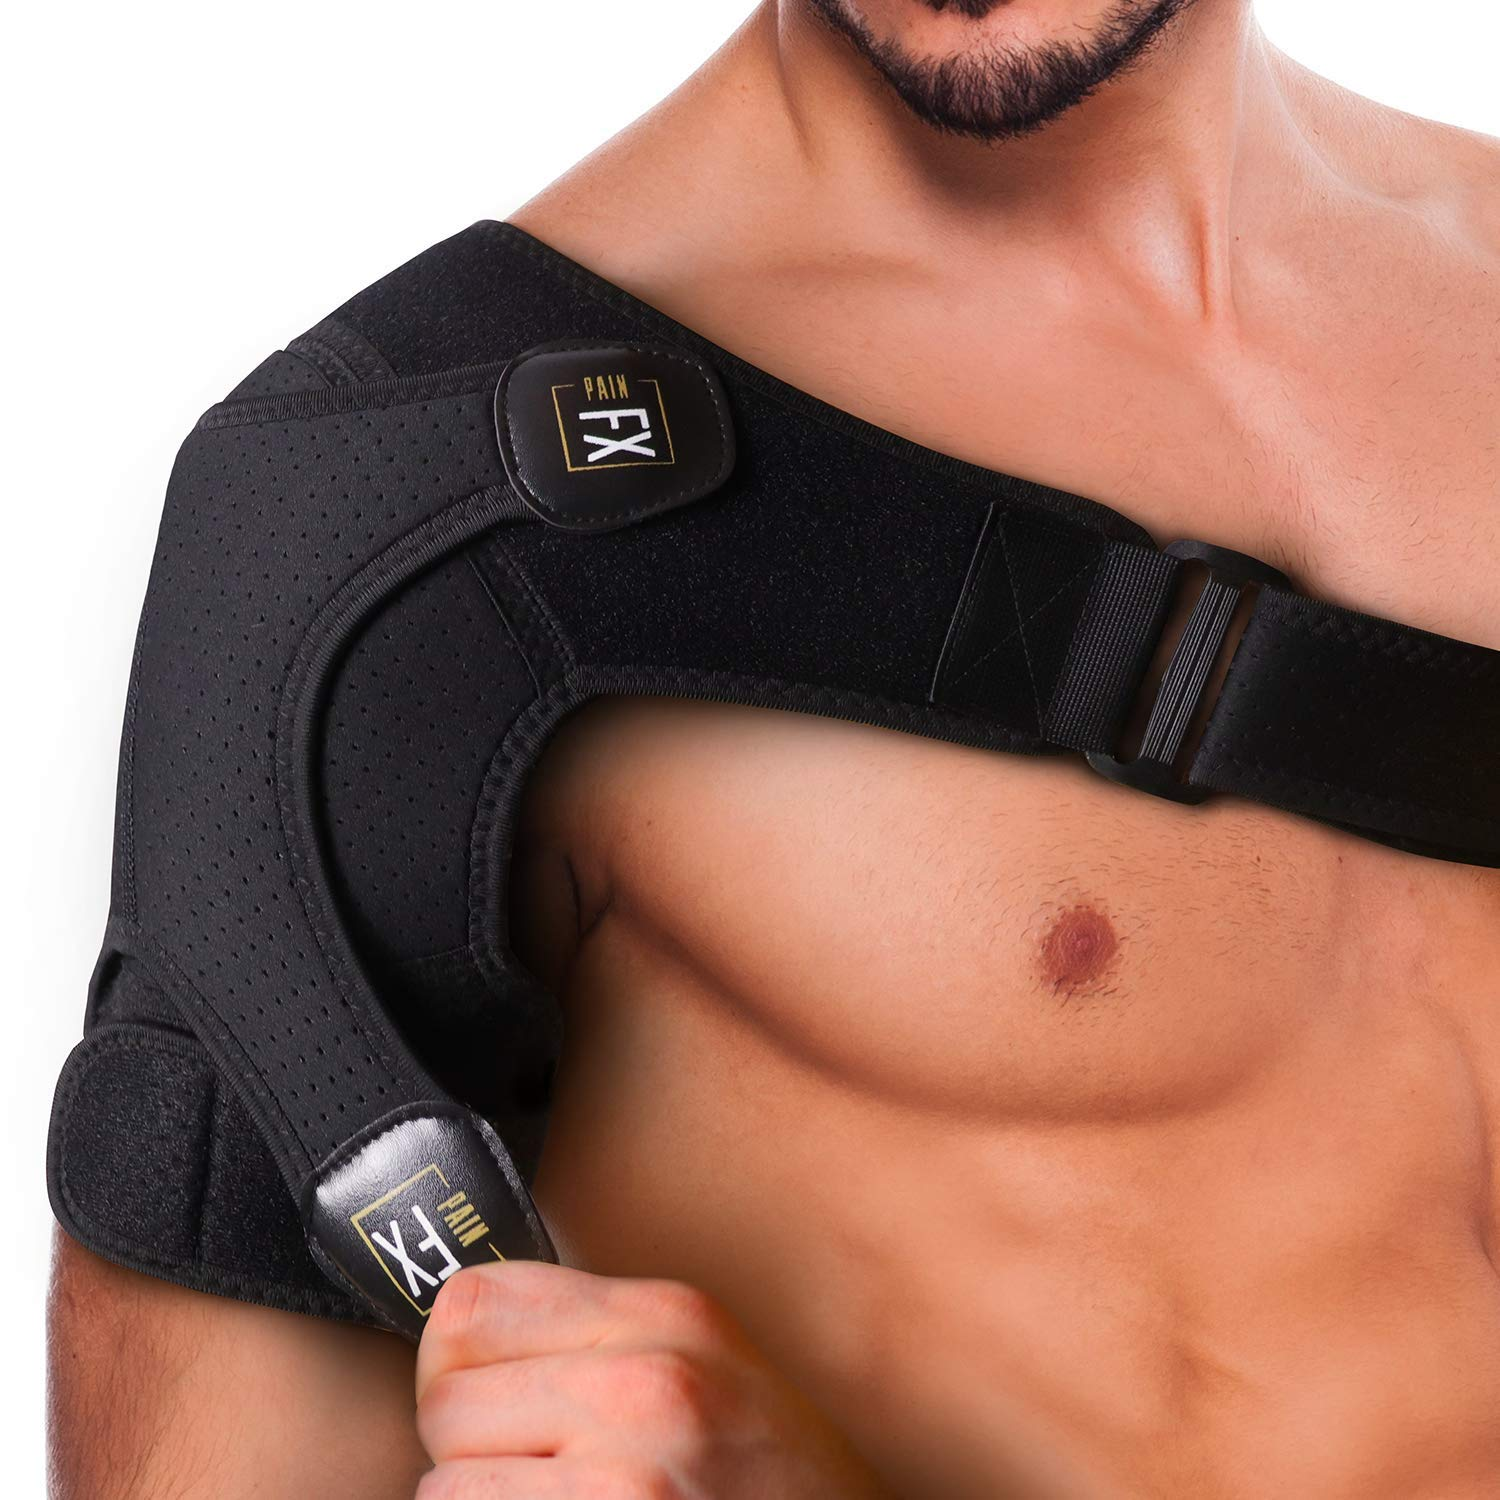 PainFX Shoulder Brace for Men with Rotator Cuff Support and Adjustable Compression Sleeve - Lightweight and Breathable, Prevents Dislocations & Speed Up Recovery from AC Sprains, Bursitis and Tears by PainFX